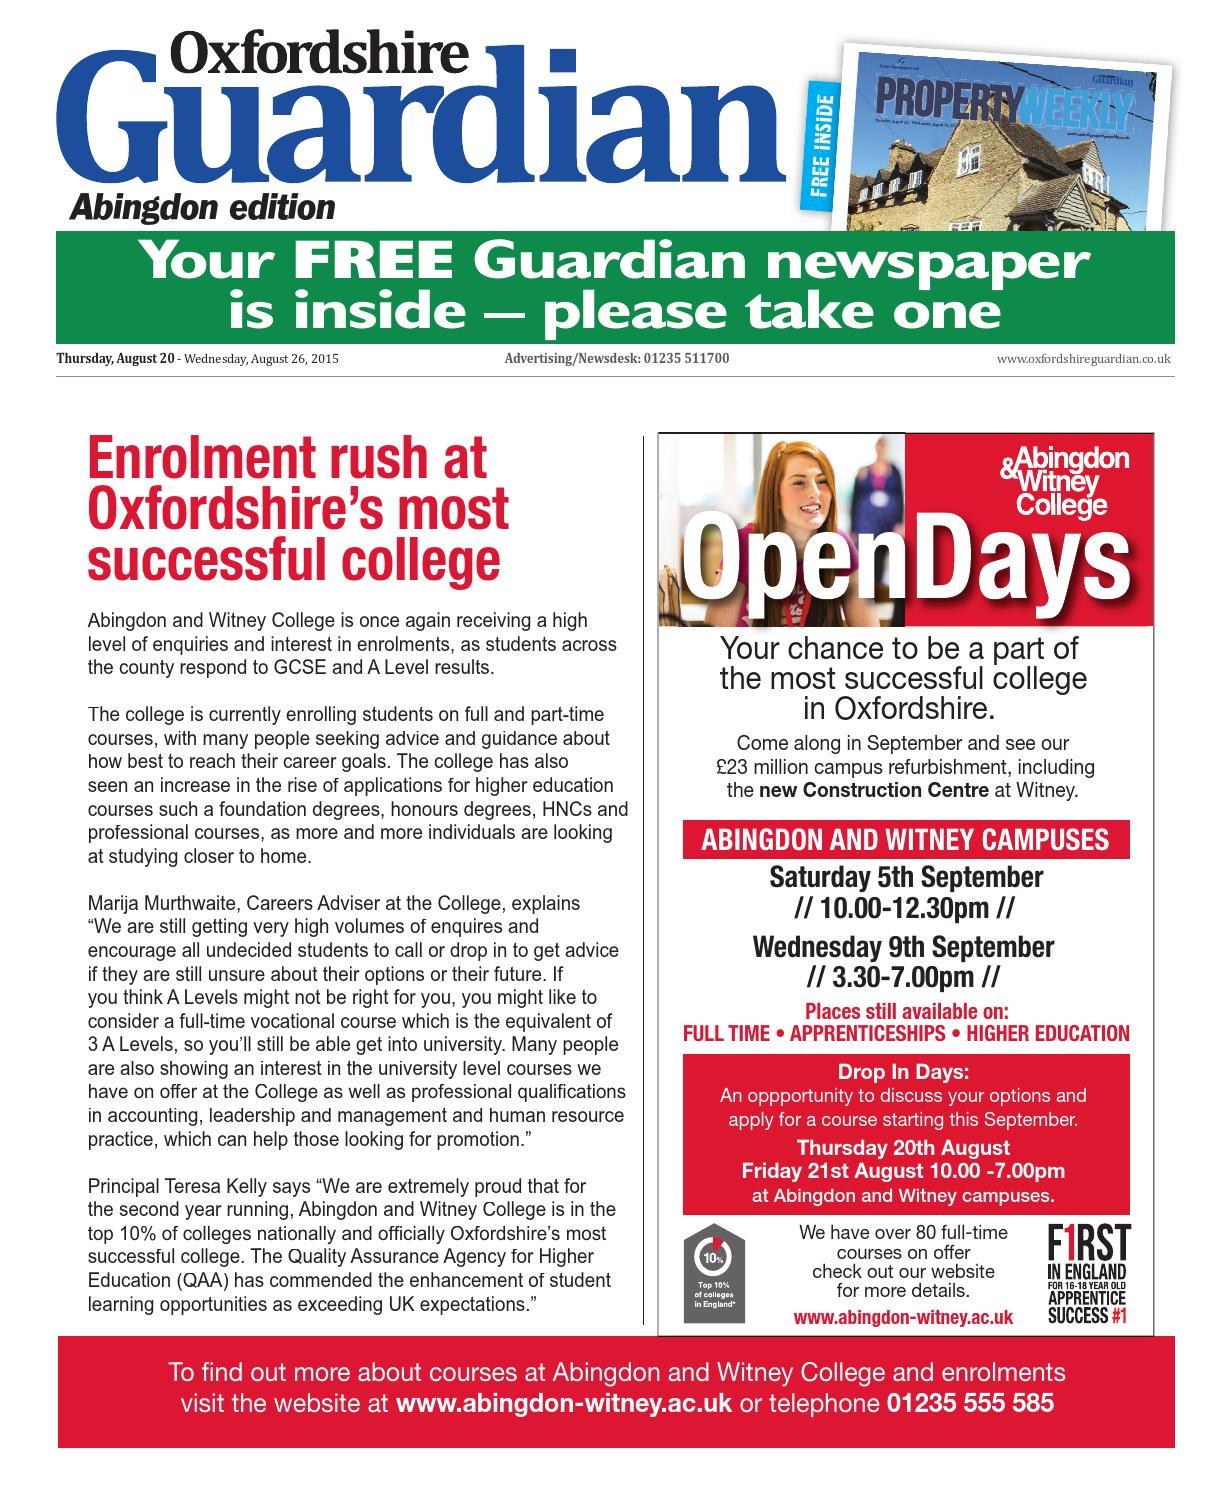 20 August 2015 Oxfordshire Guardian Abingdon By Taylor Newspapers Voucher Deposit Kh Rp 100000 Issuu